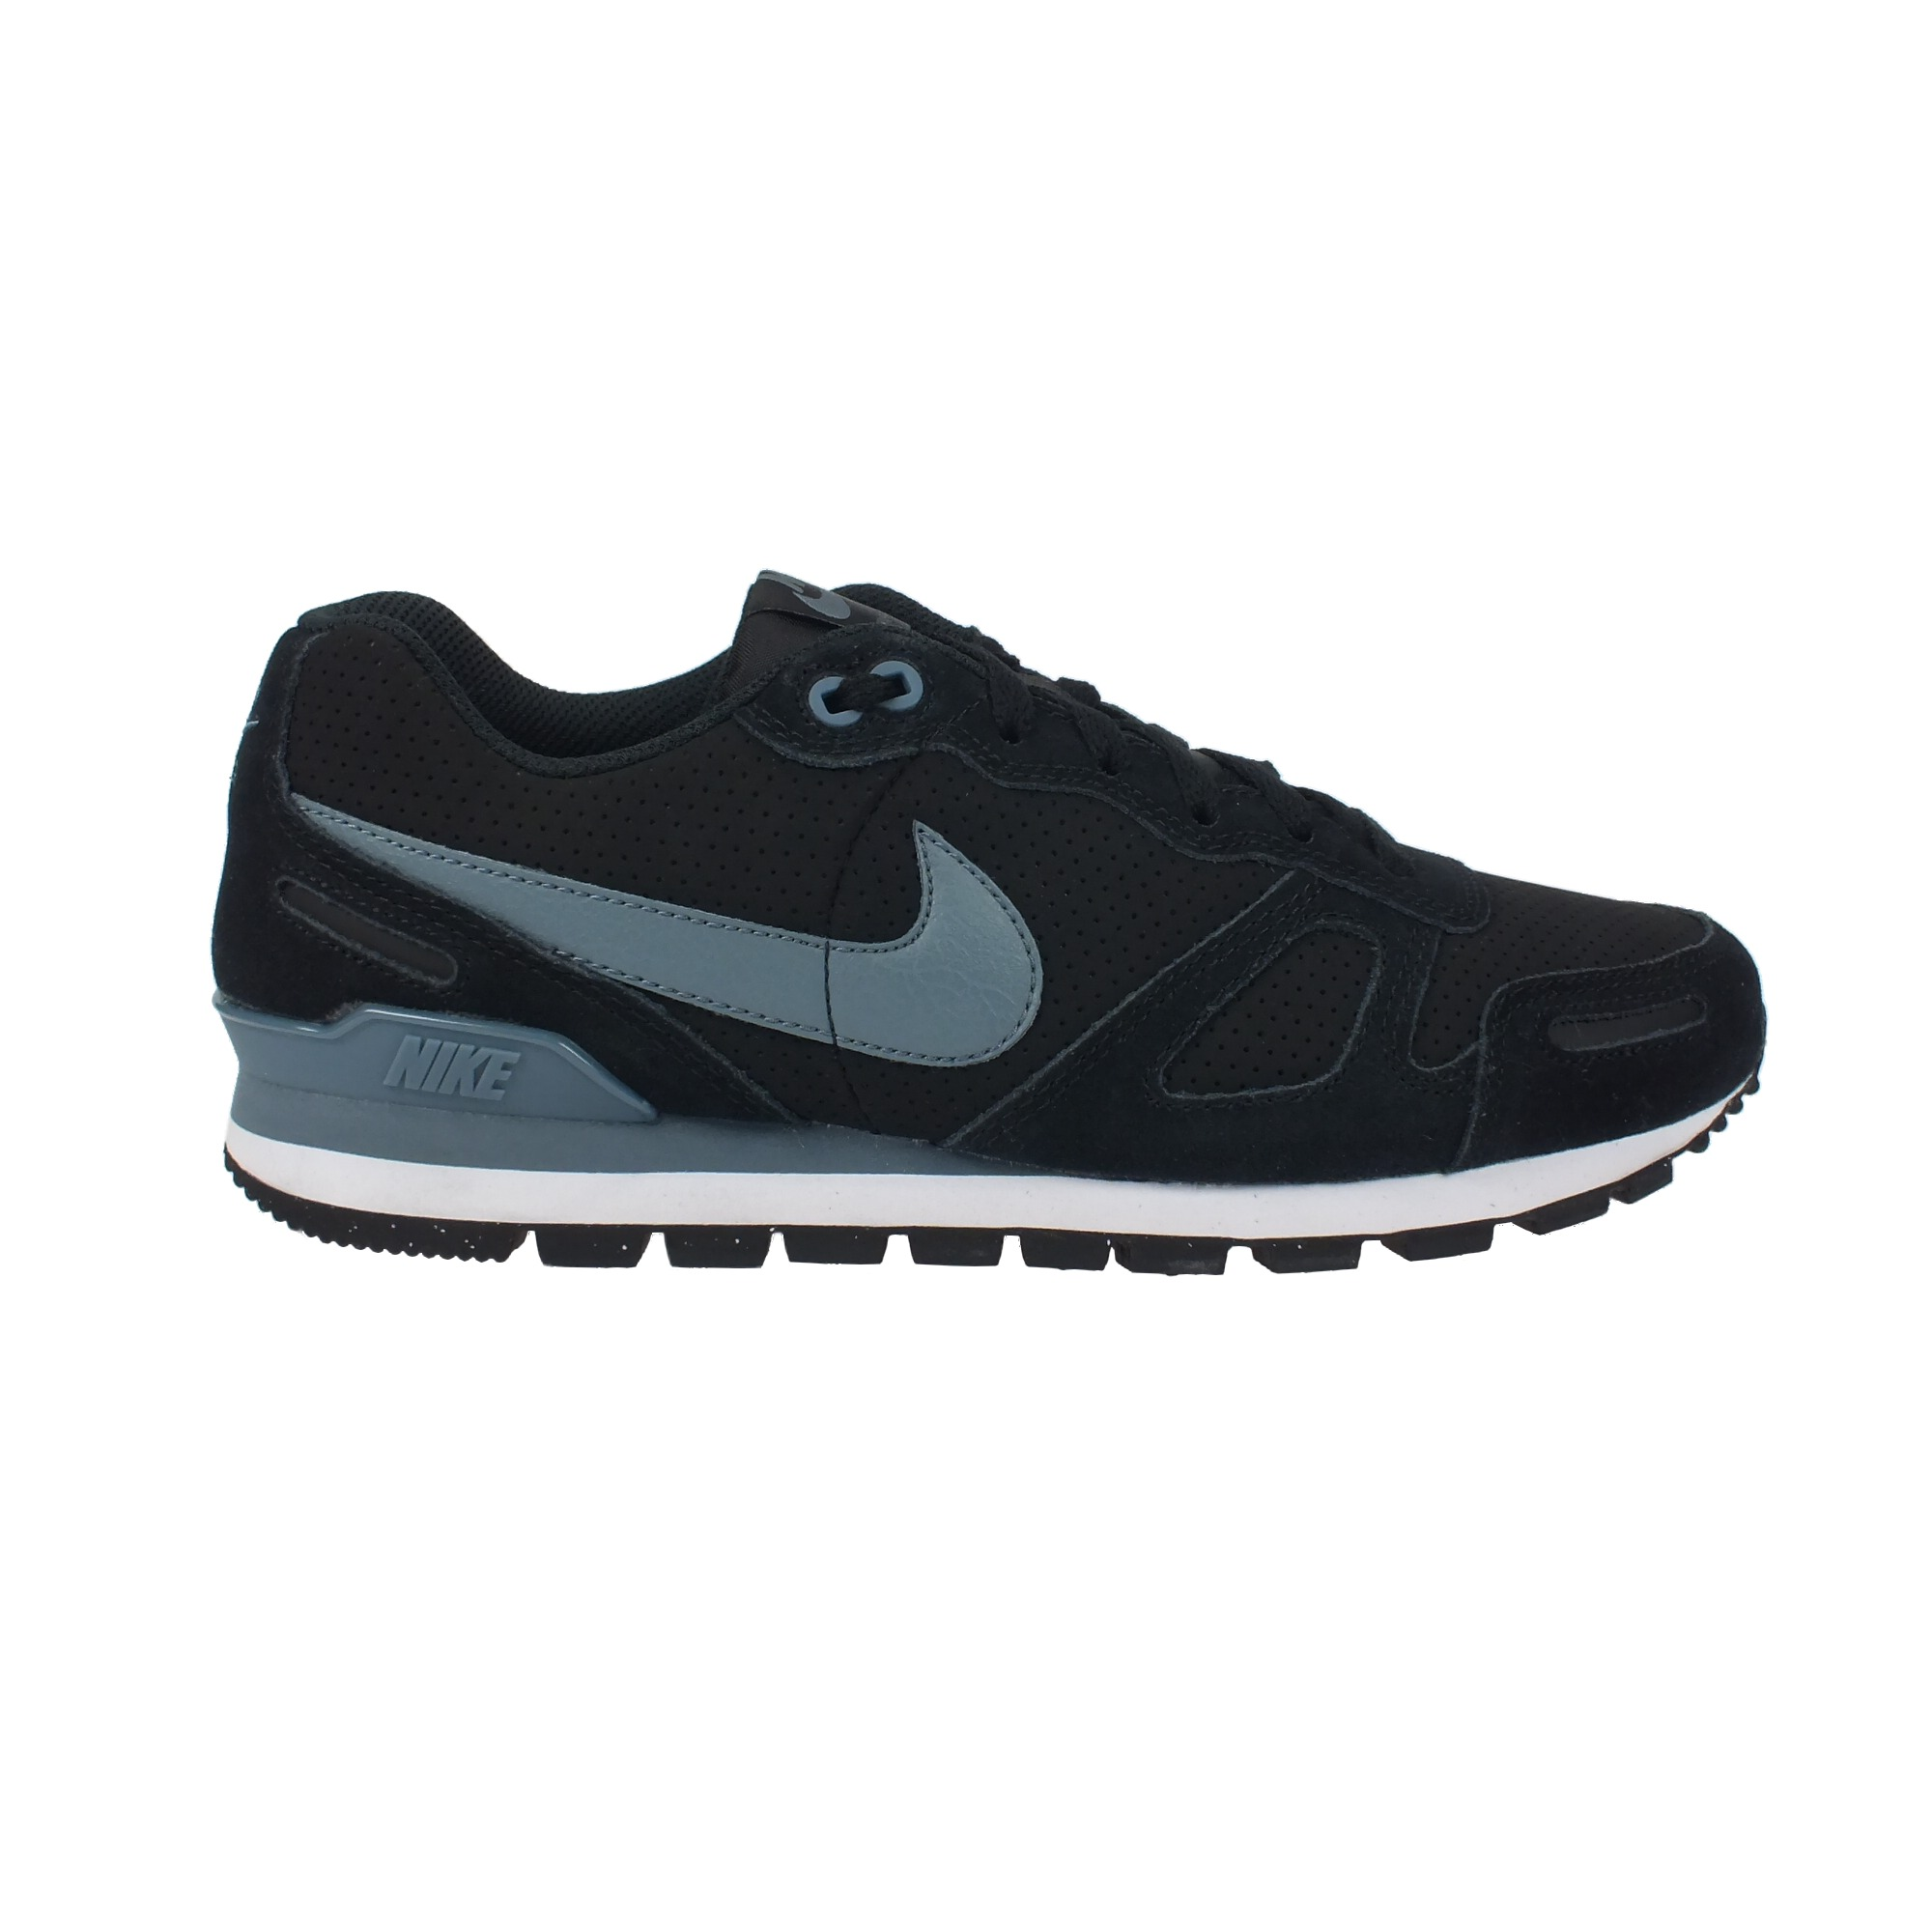 nike air waffle trainer leather men 39 s trainers shoes various colours ebay. Black Bedroom Furniture Sets. Home Design Ideas